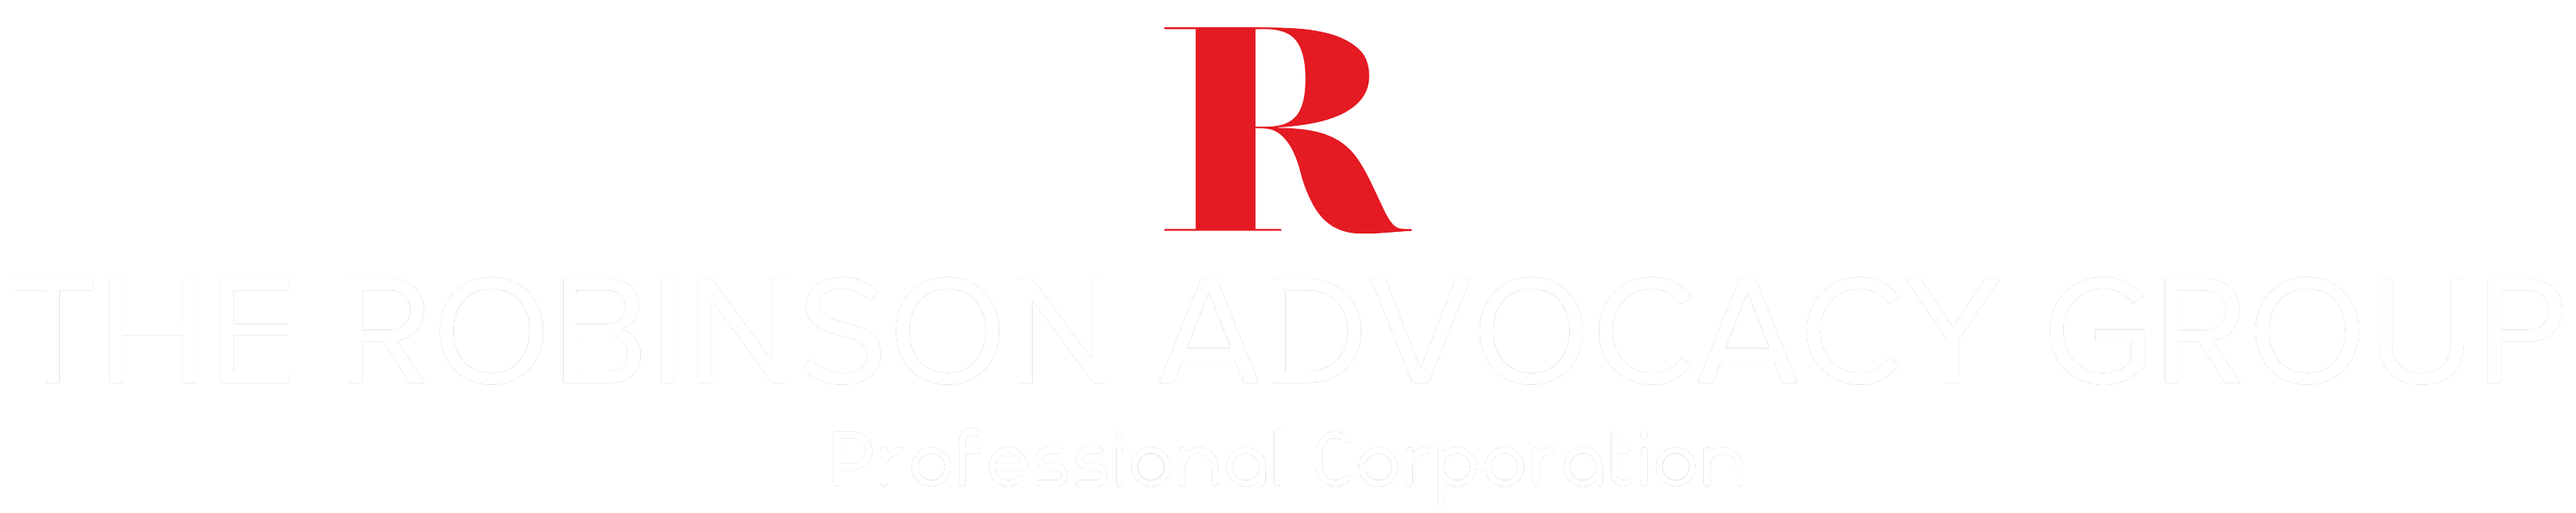 The Robinson Advocacy Group Professional Corporation